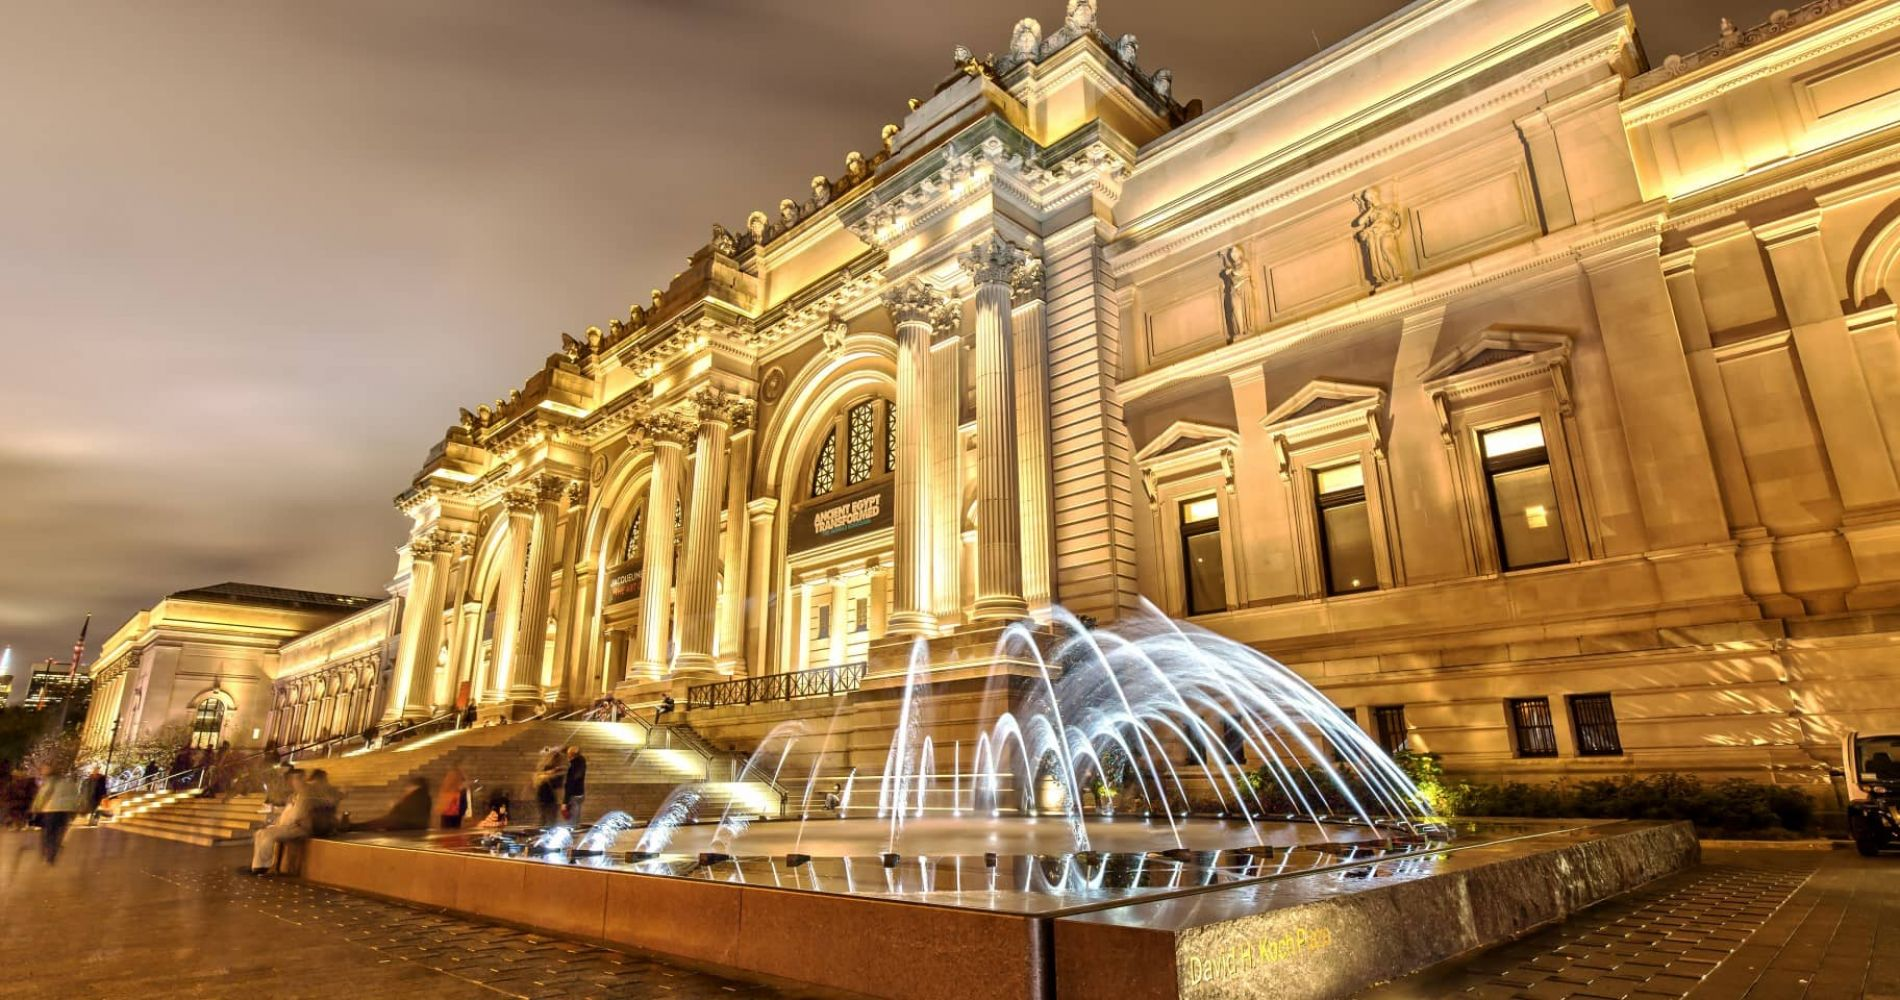 The Best Museums in New York City - From the Famous to the